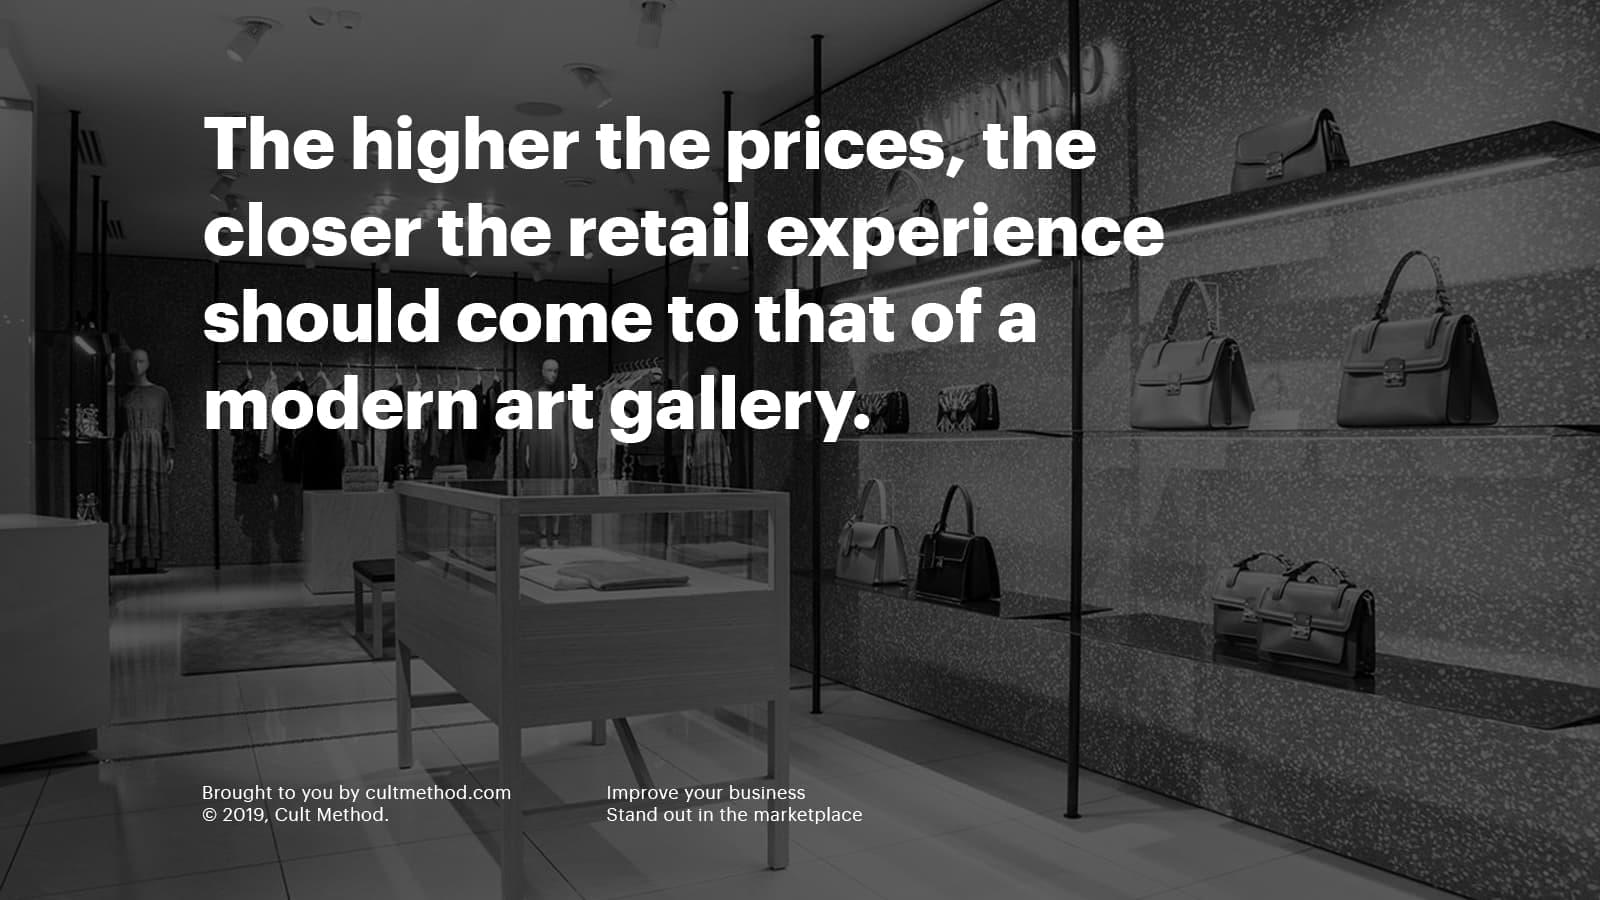 The higher the prices, the closer the retail experience should come to that of a modern art gallery